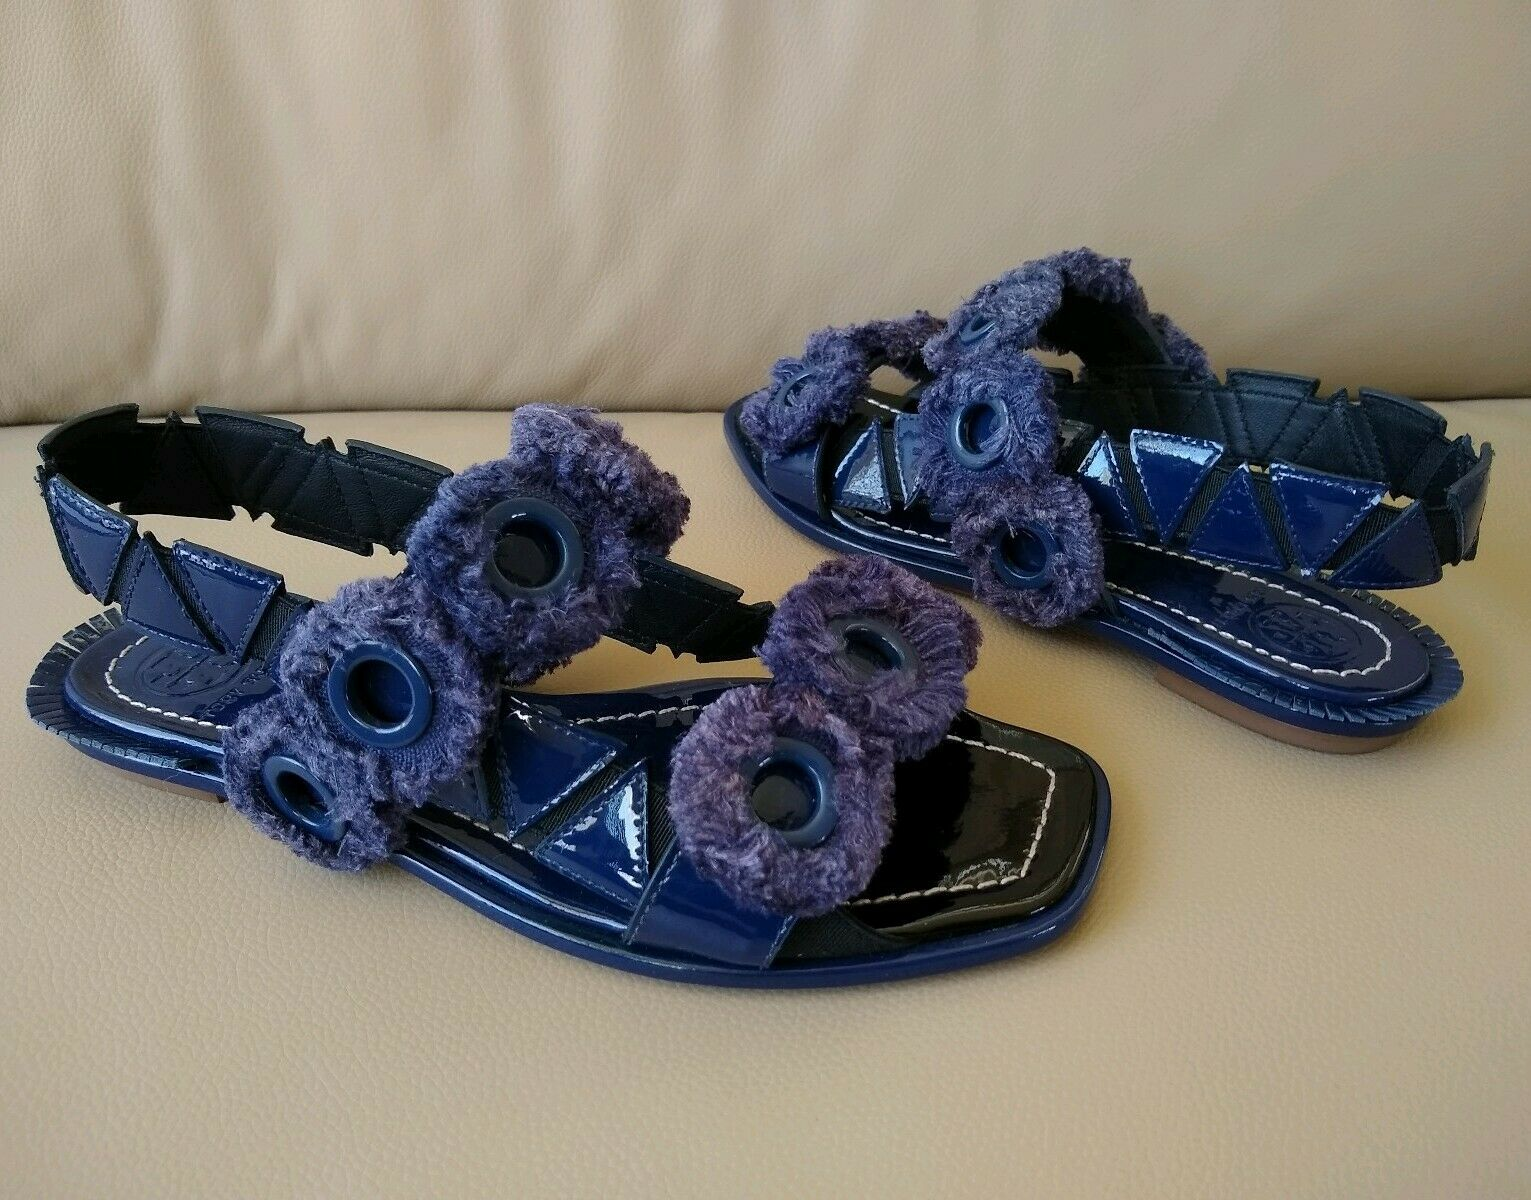 TORY BURCH FREYA Eyelet Flat Flat Flat Sandals bluee Patent Leather Sz 10.5, 6 dba019